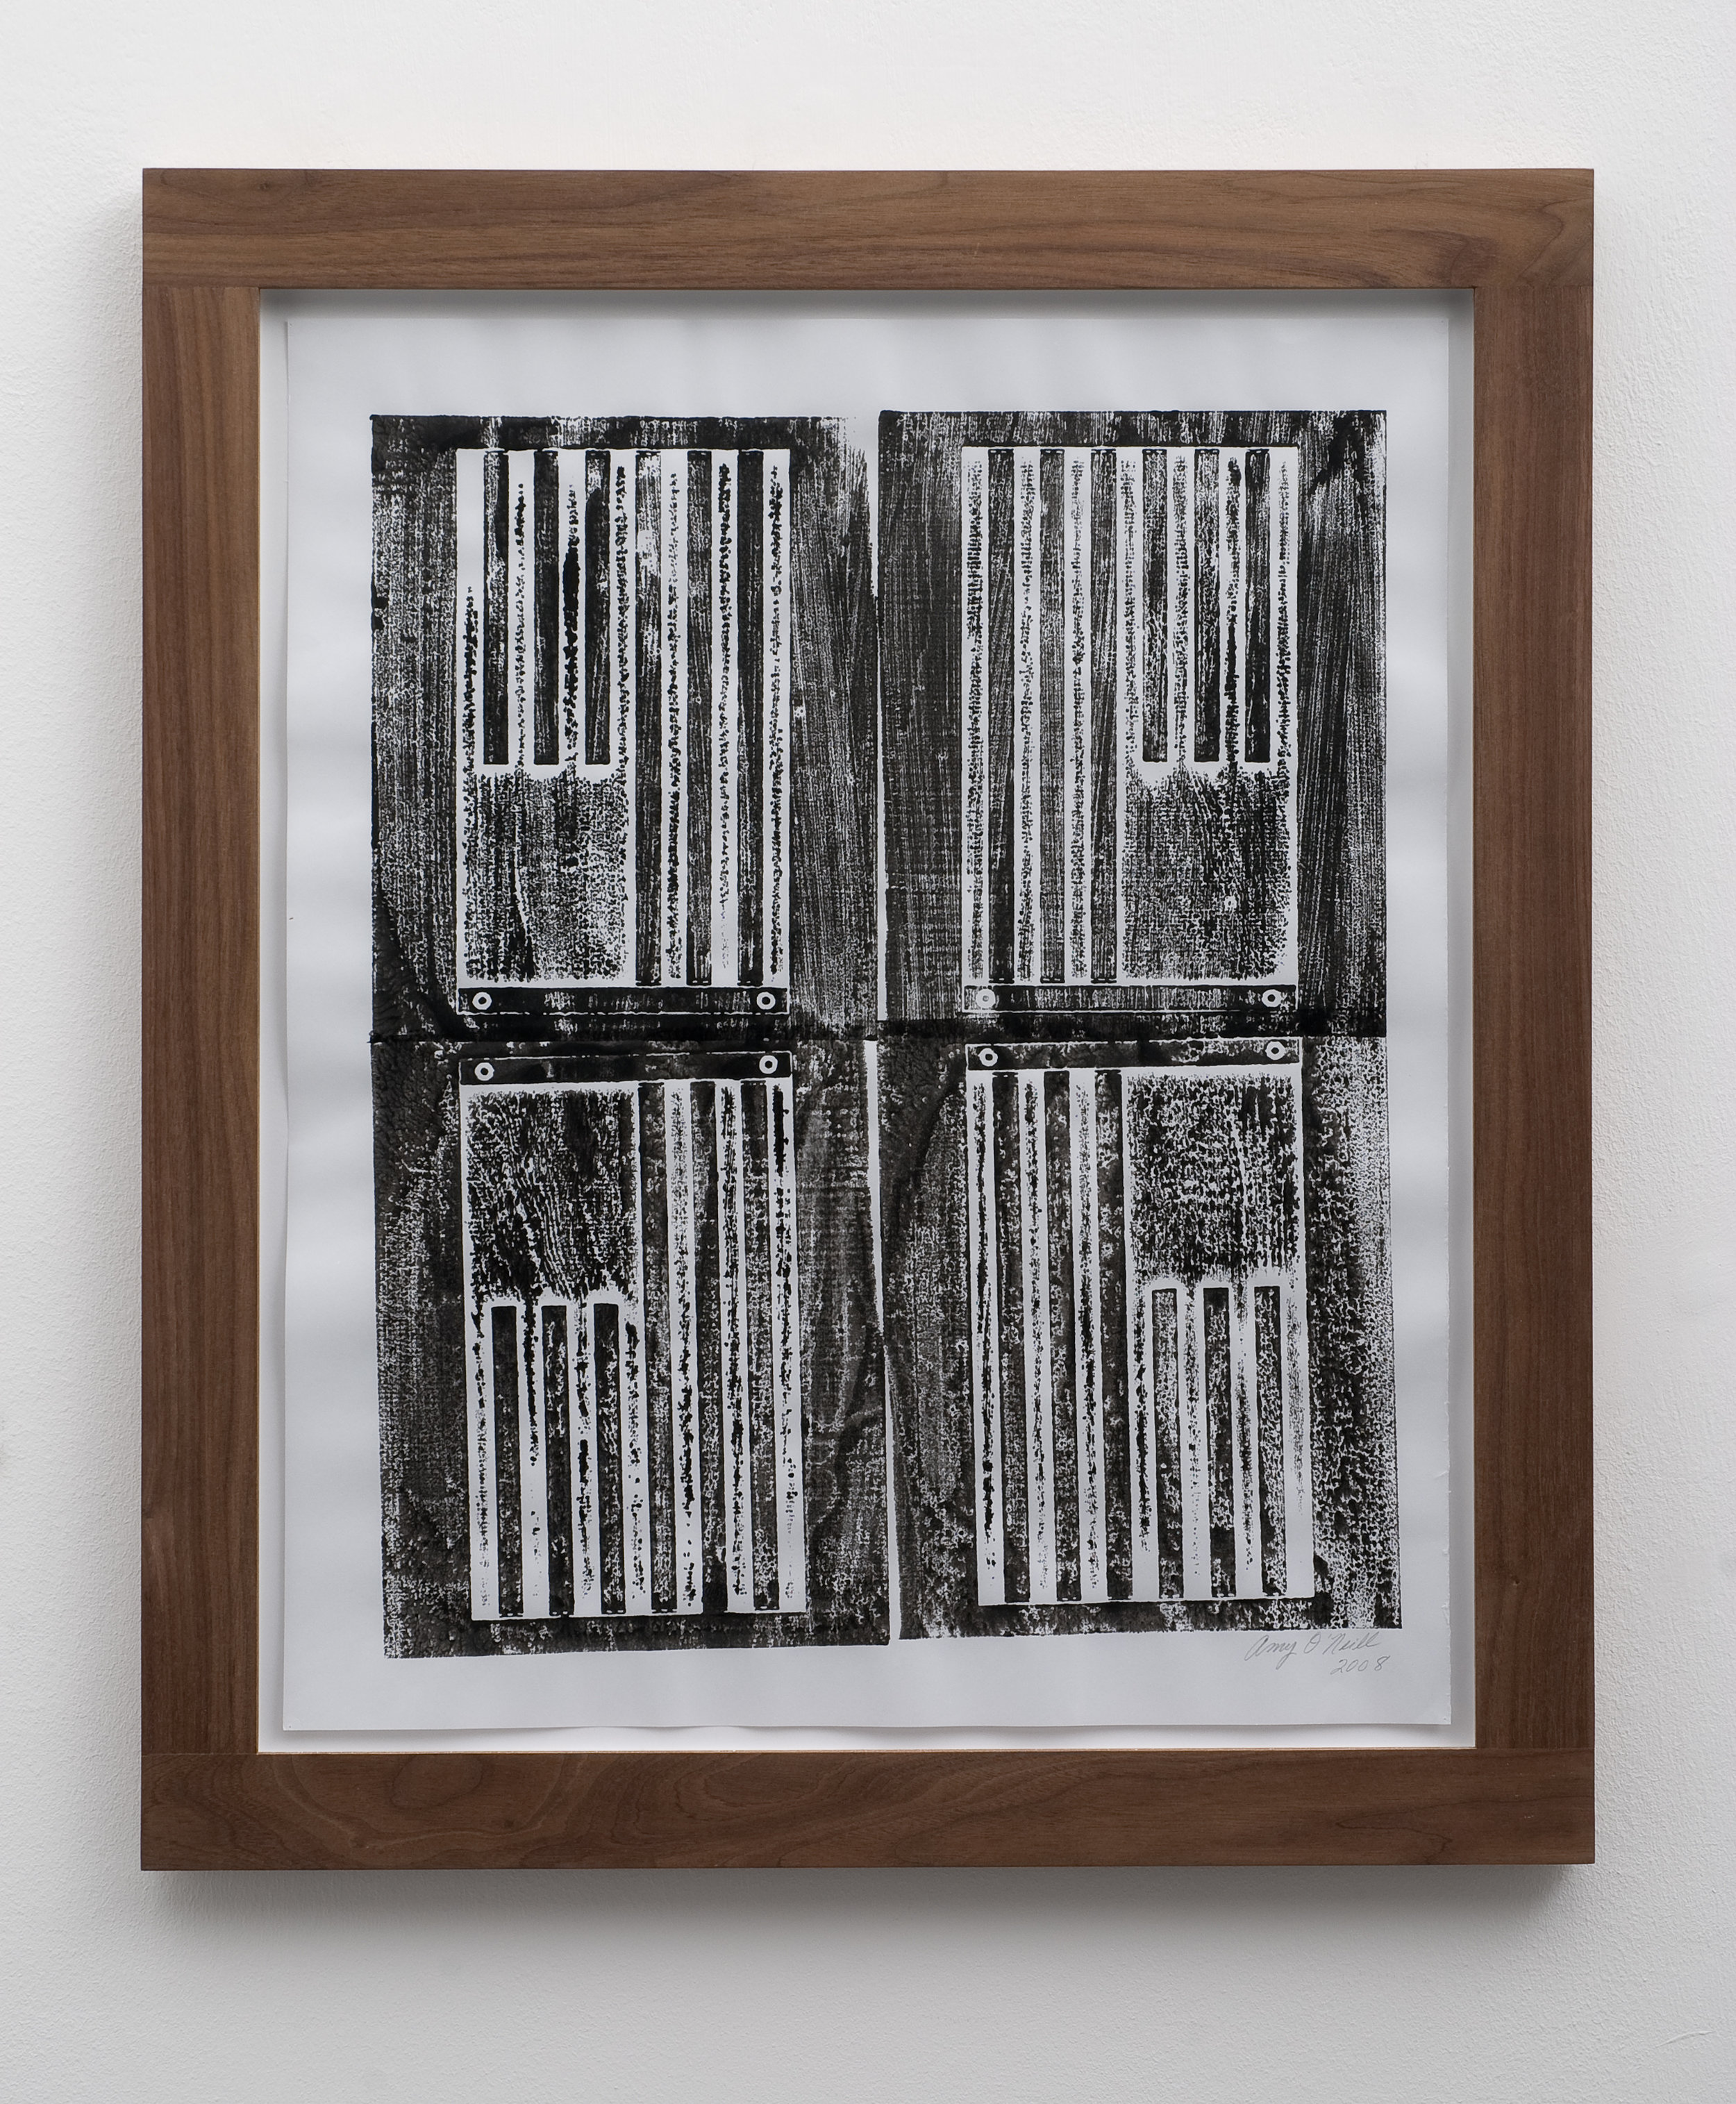 Stripes, 2008 woodcut print 54 x 44,5 cm - 21 1/4 x 17 1/2 inches